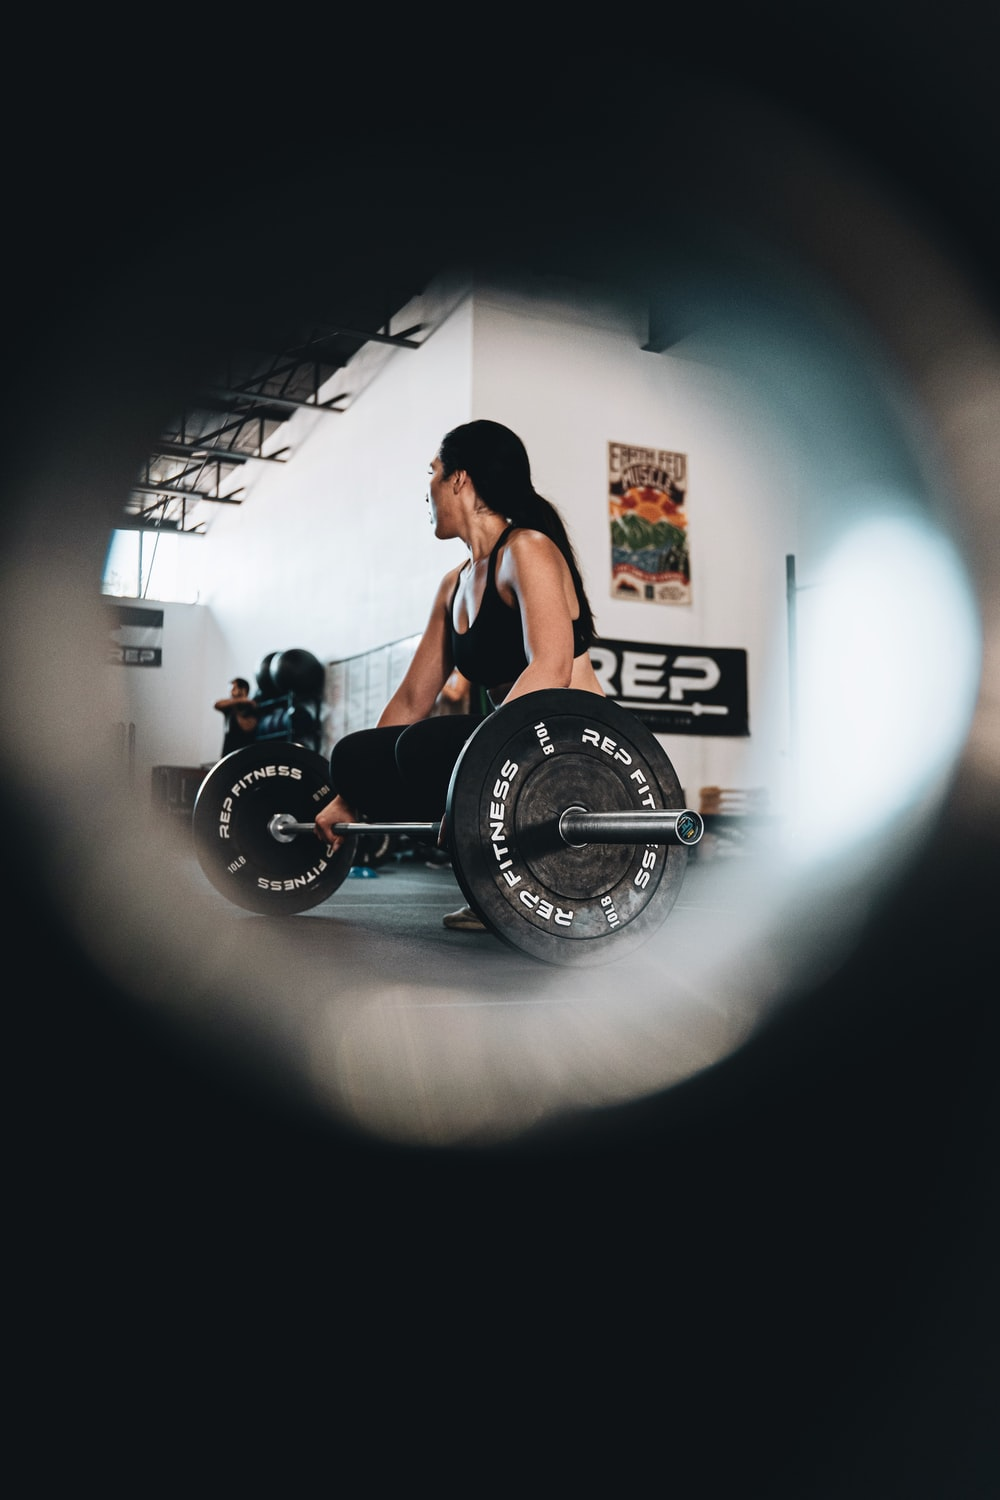 woman in black tank top sitting on black and white wheel chair